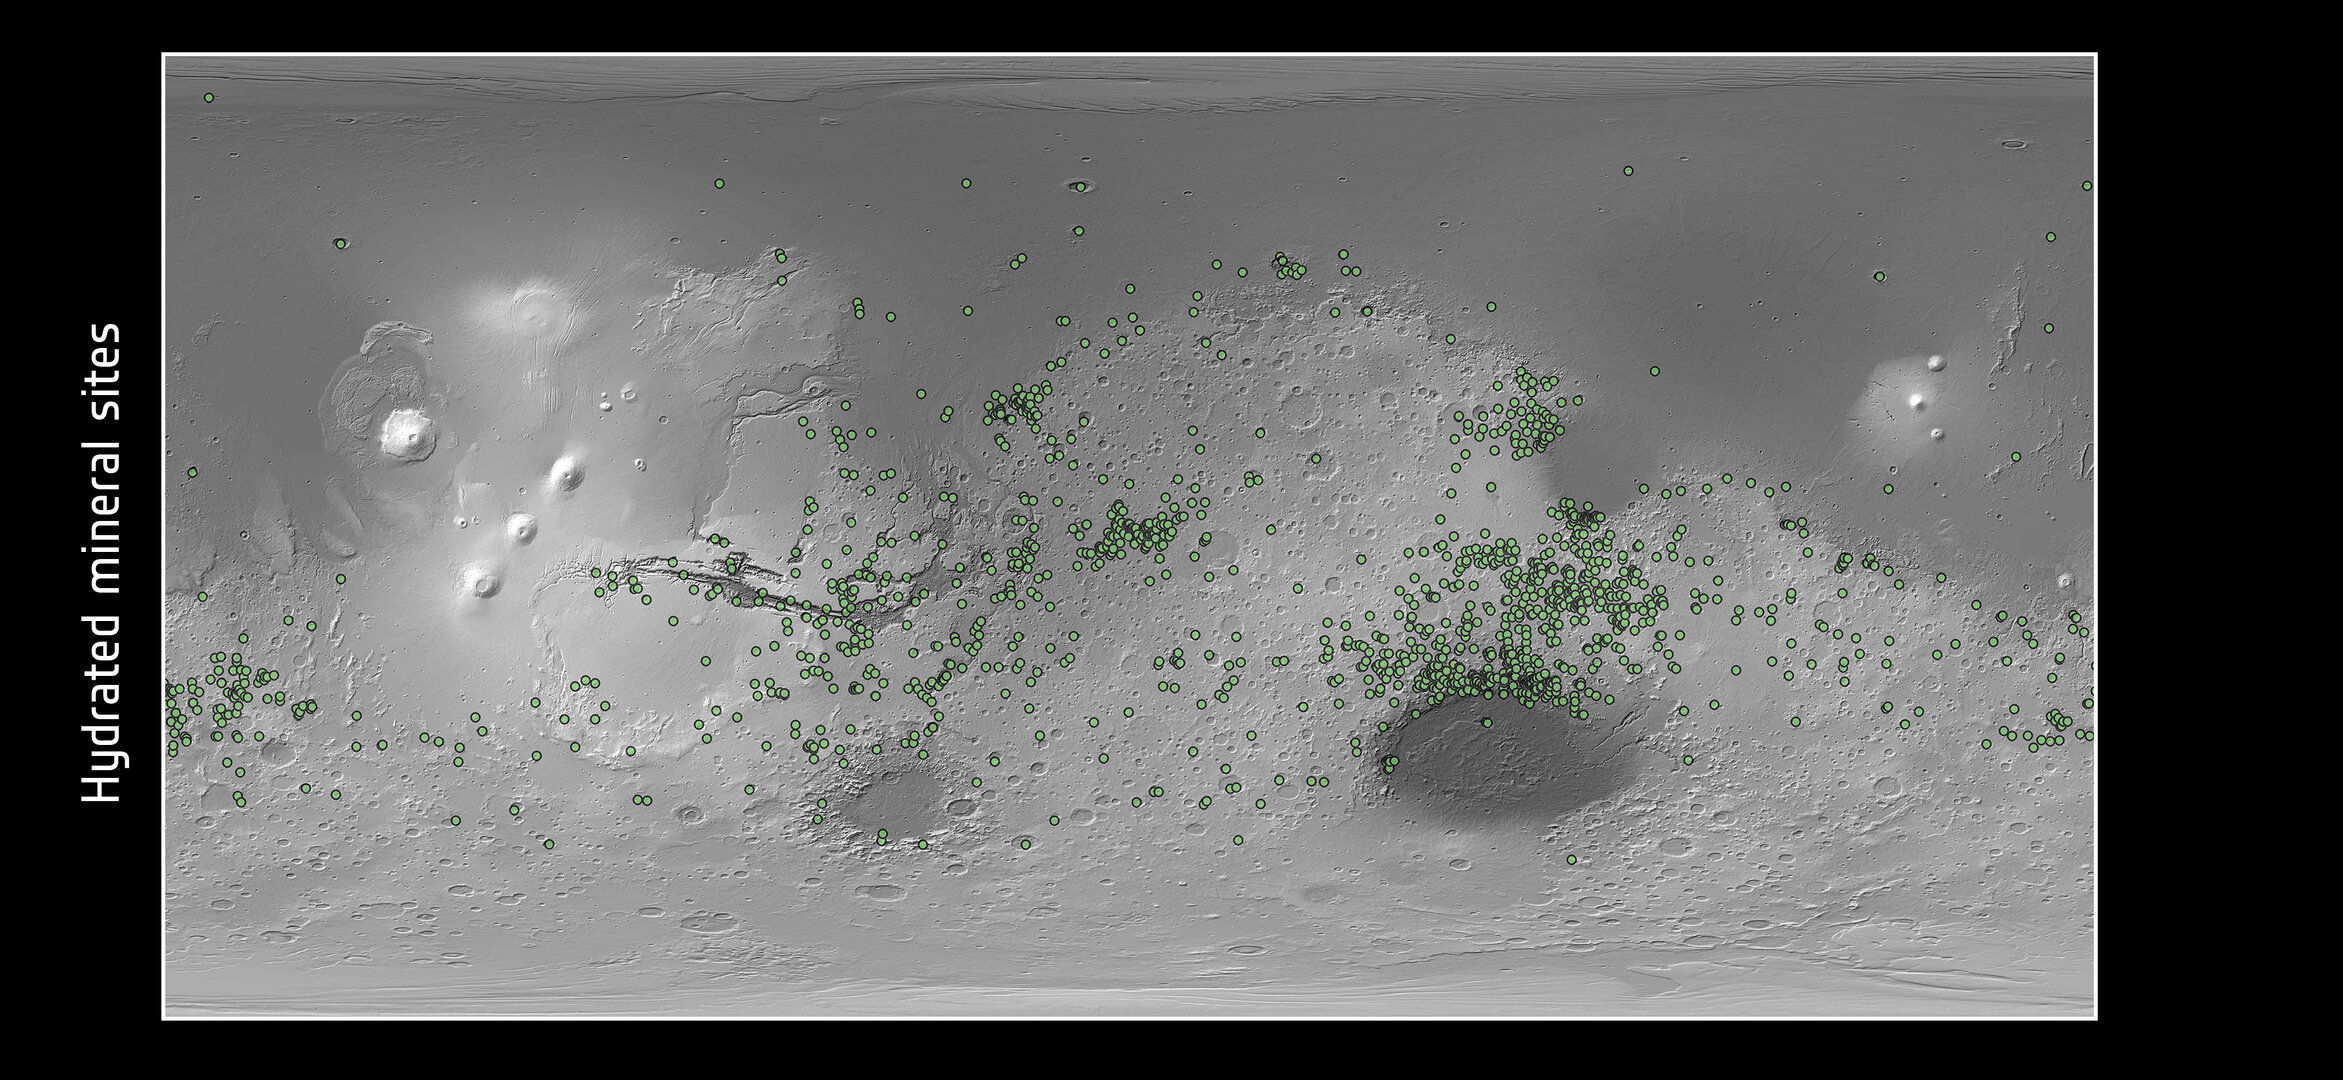 Hydrated mineral sites on Mars